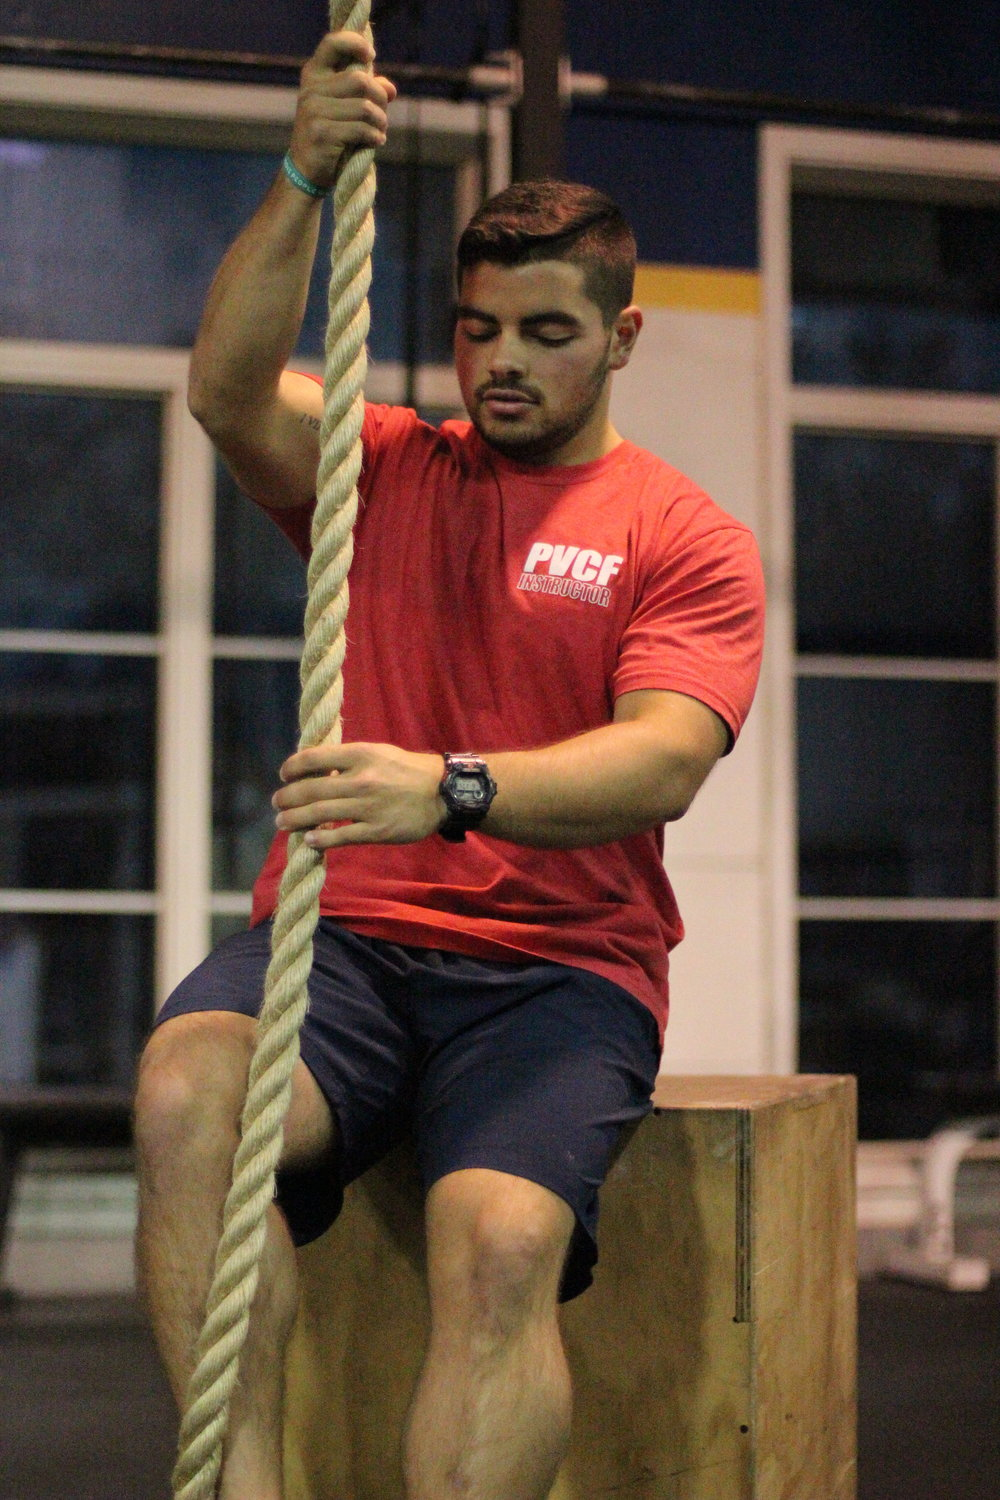 Coach Will prepares to teach the rope climb!